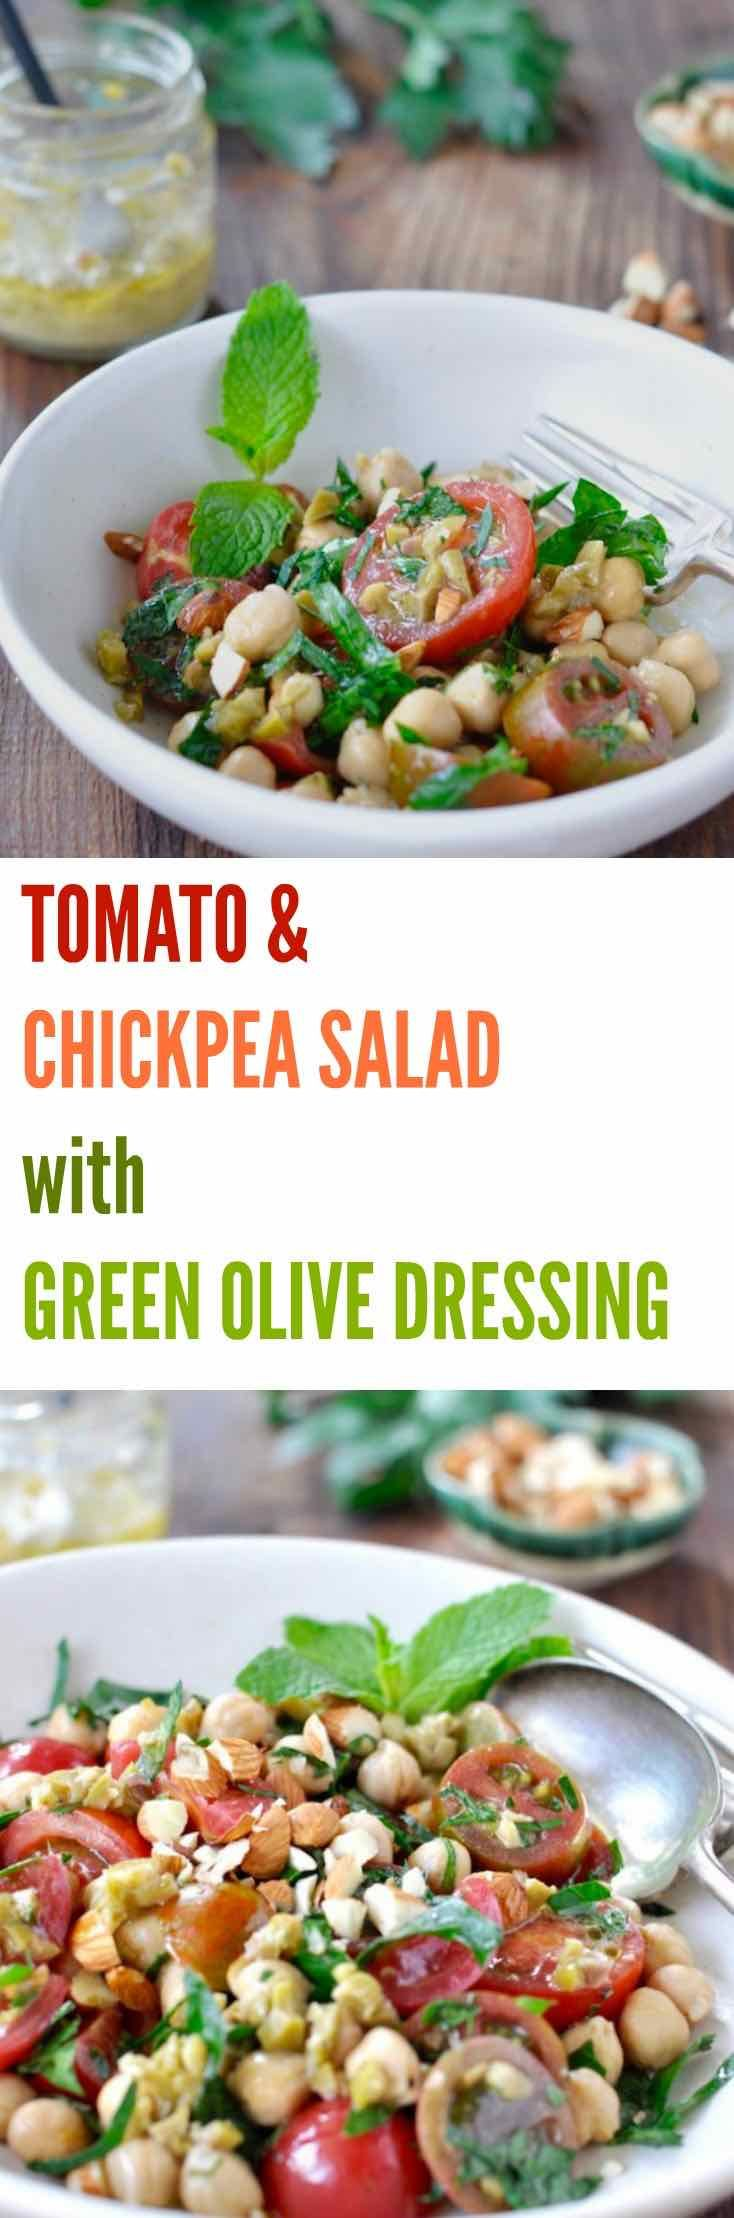 Tomato & chickpea salad with green olive dressing